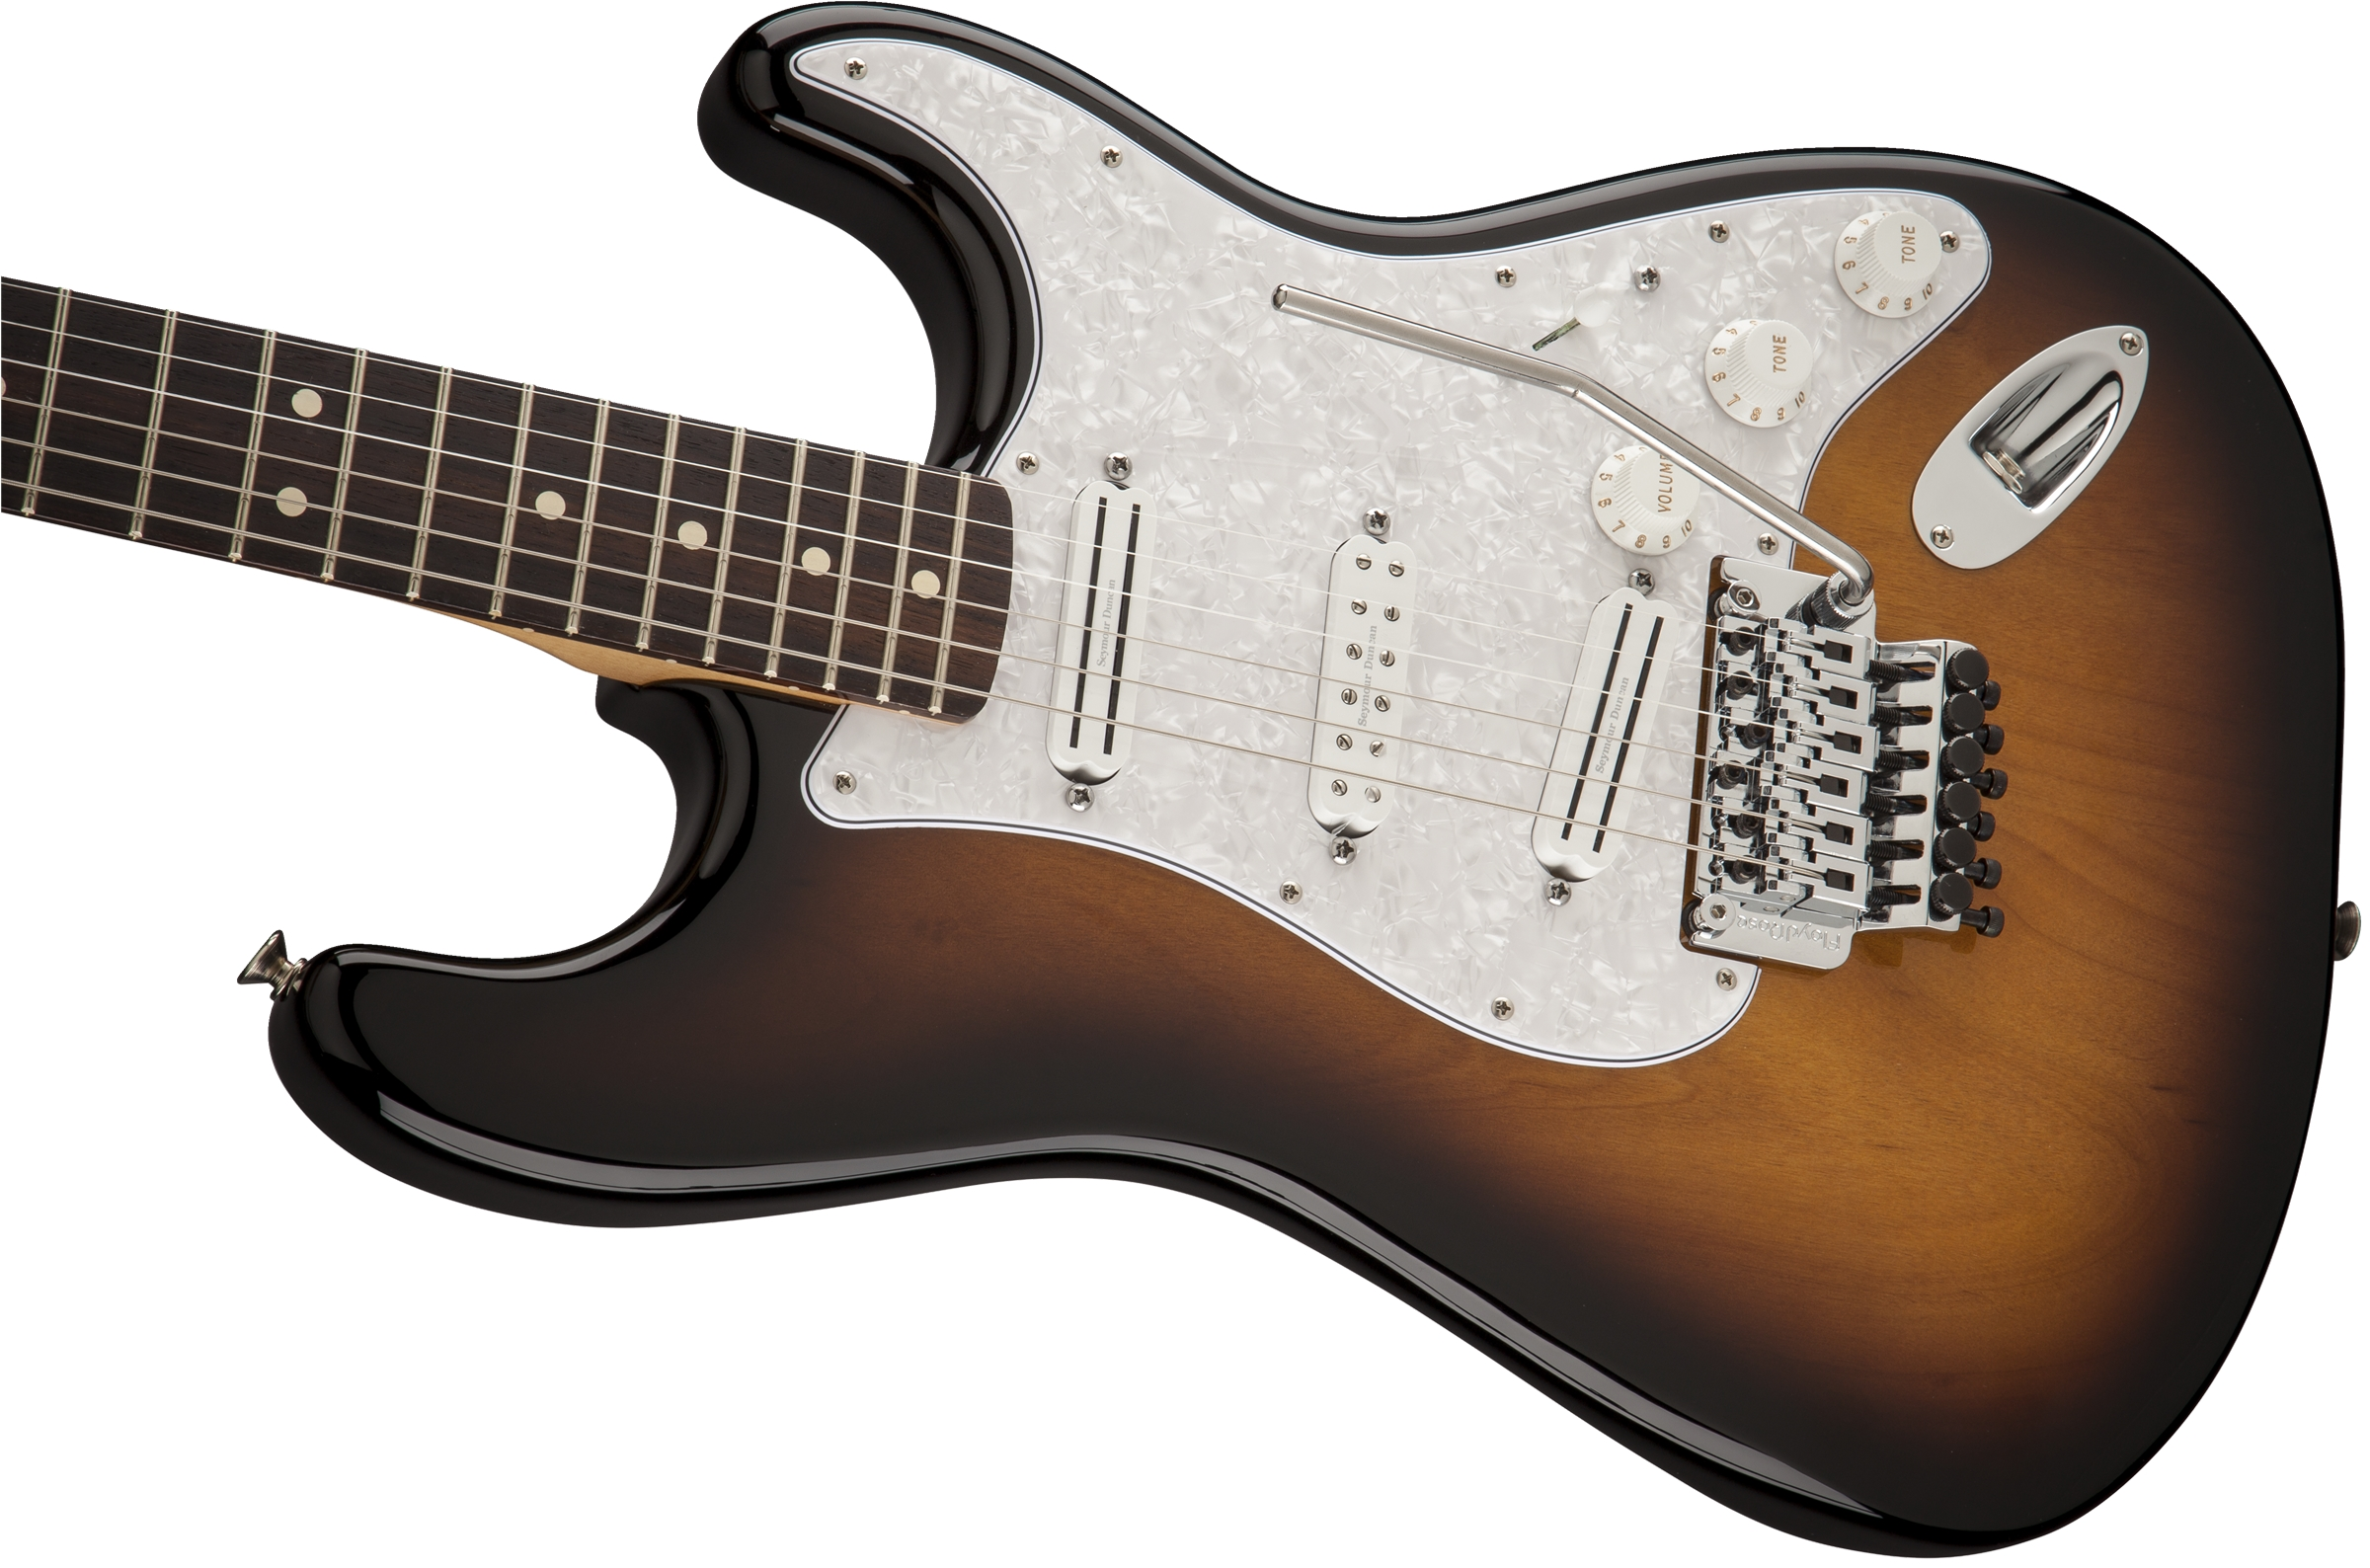 Mexican Lone Star Strat Wiring Diagram | Wiring Resources 2019 on